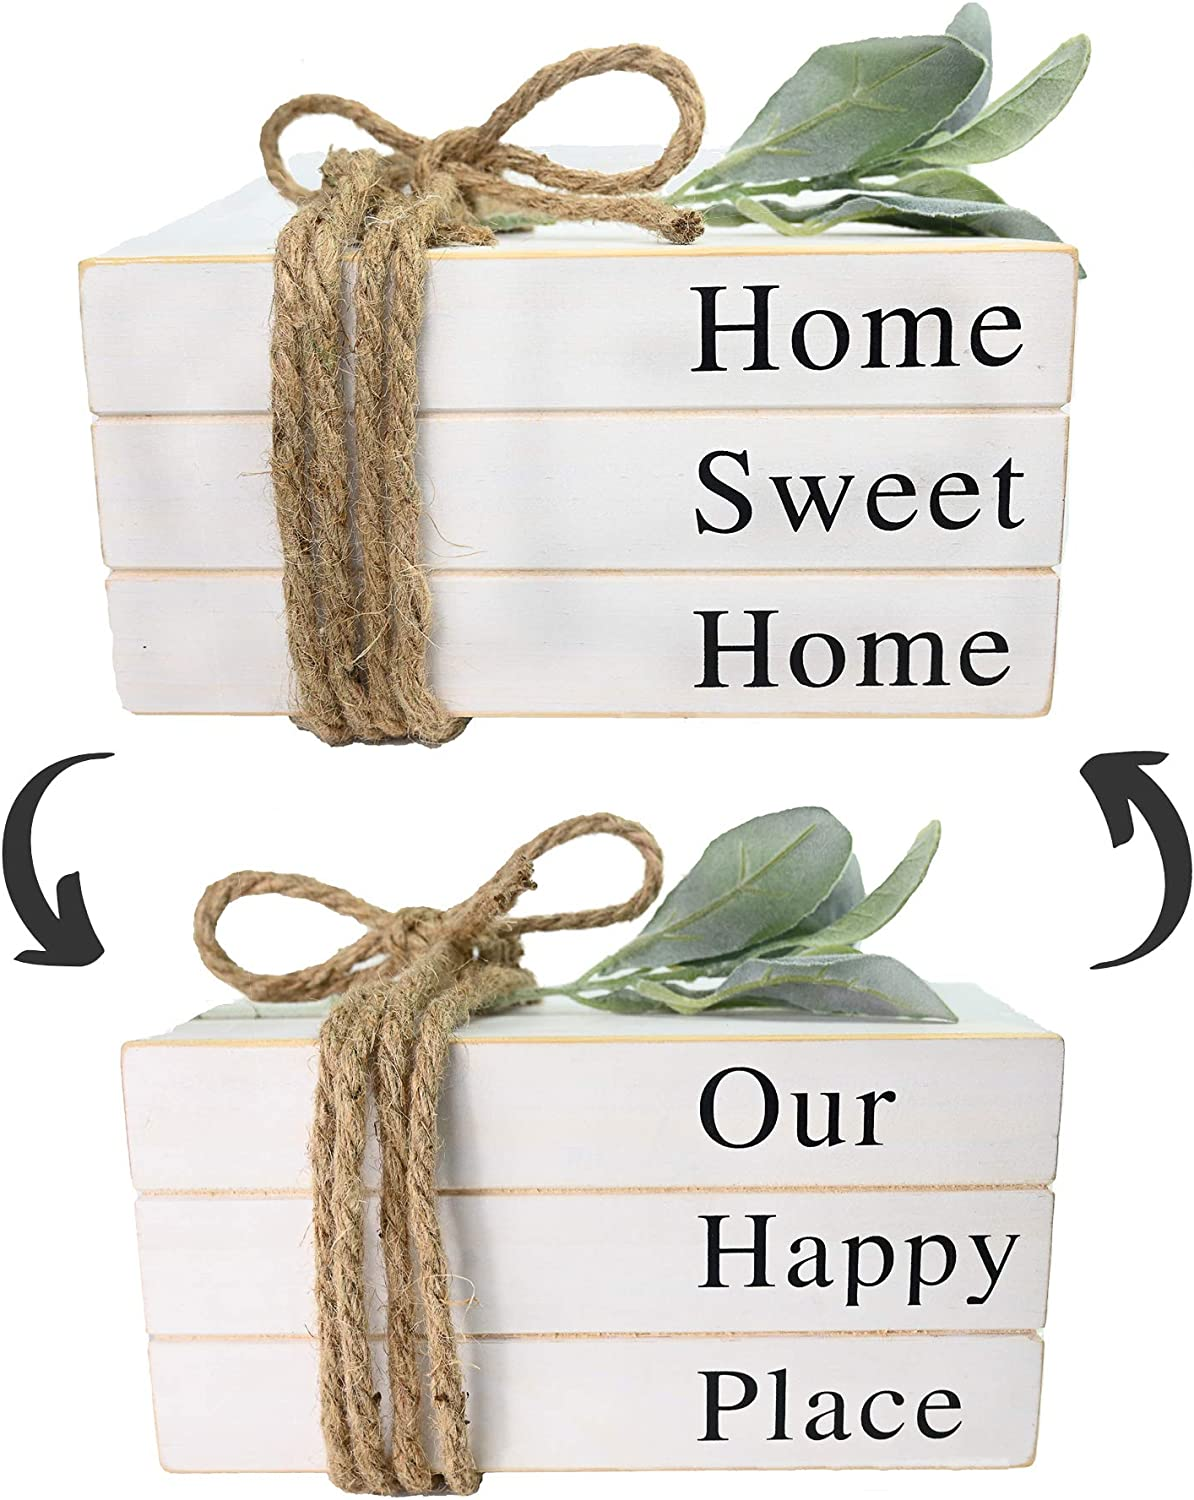 Dollan Stack Faux Books for Decoration, Decorative Stacked Farmhouse Wooden Books,2in1 White Book Shelf Decor, Home Sweet Home/Our Happy Place Signs,Accents, Rustic,Antique,Bookends (10x6x4 inches)